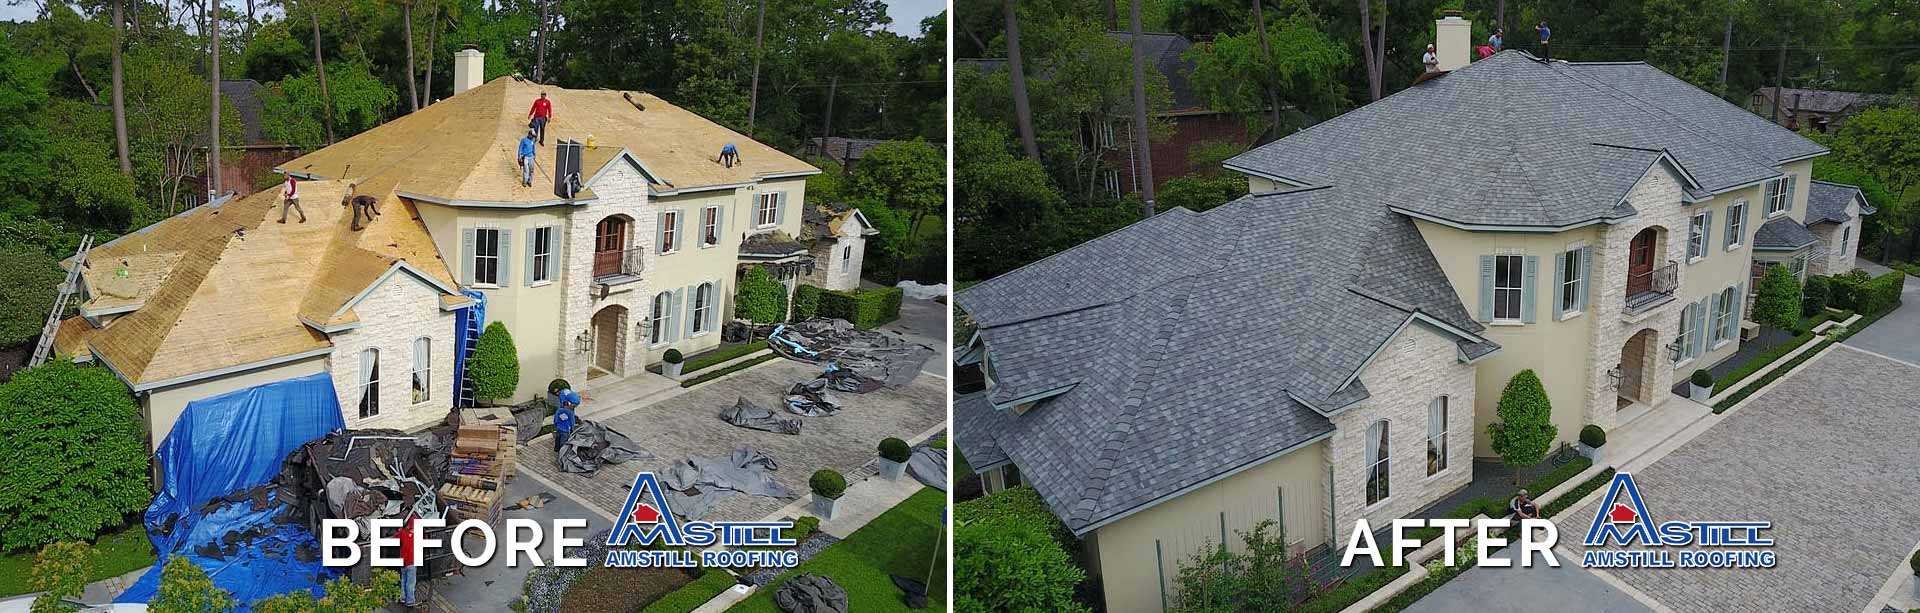 Before After Amstill Roofing Houston